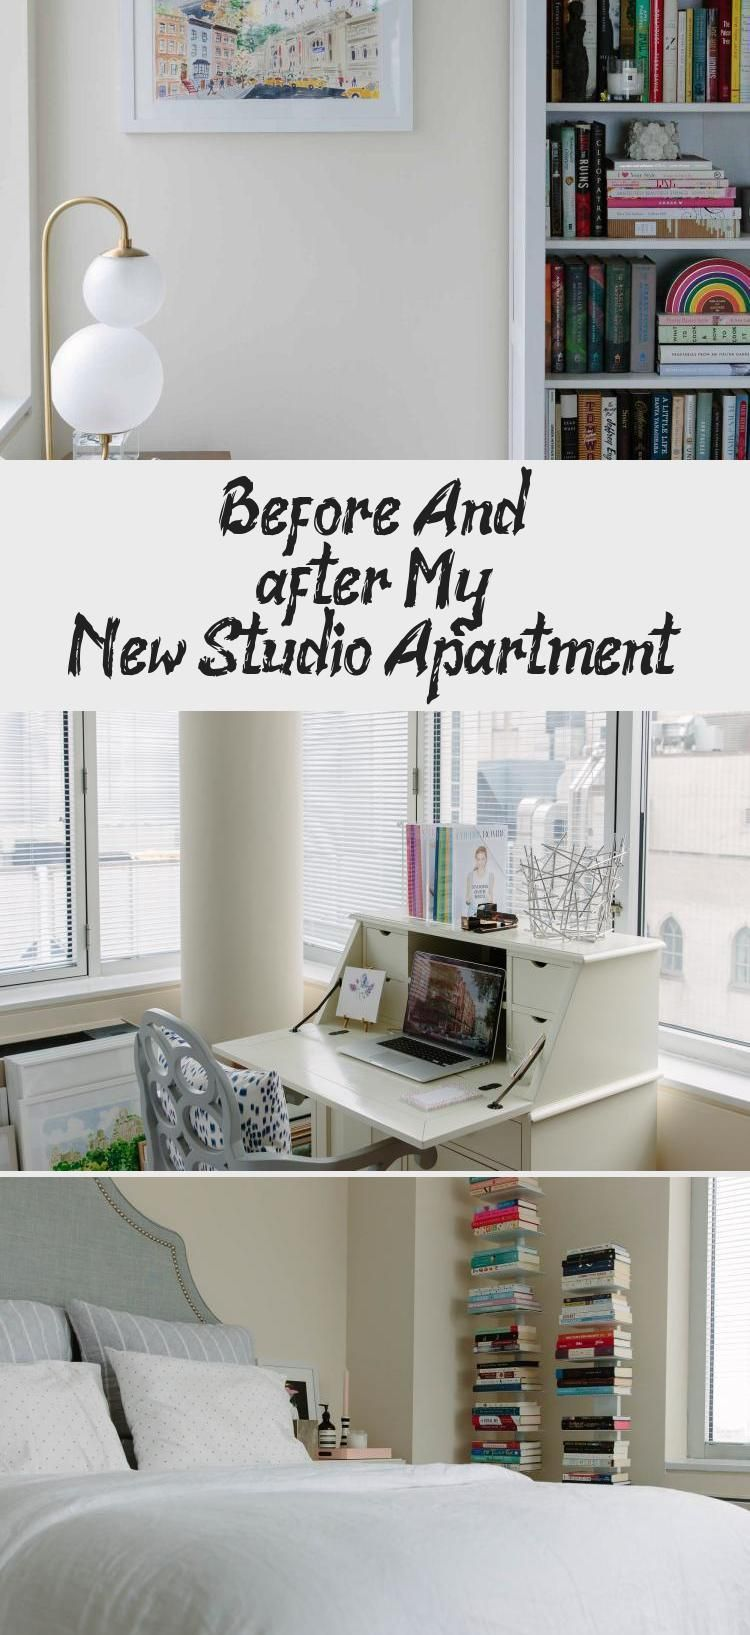 Before and after: My new studio apartment - Home Decor Diy ...